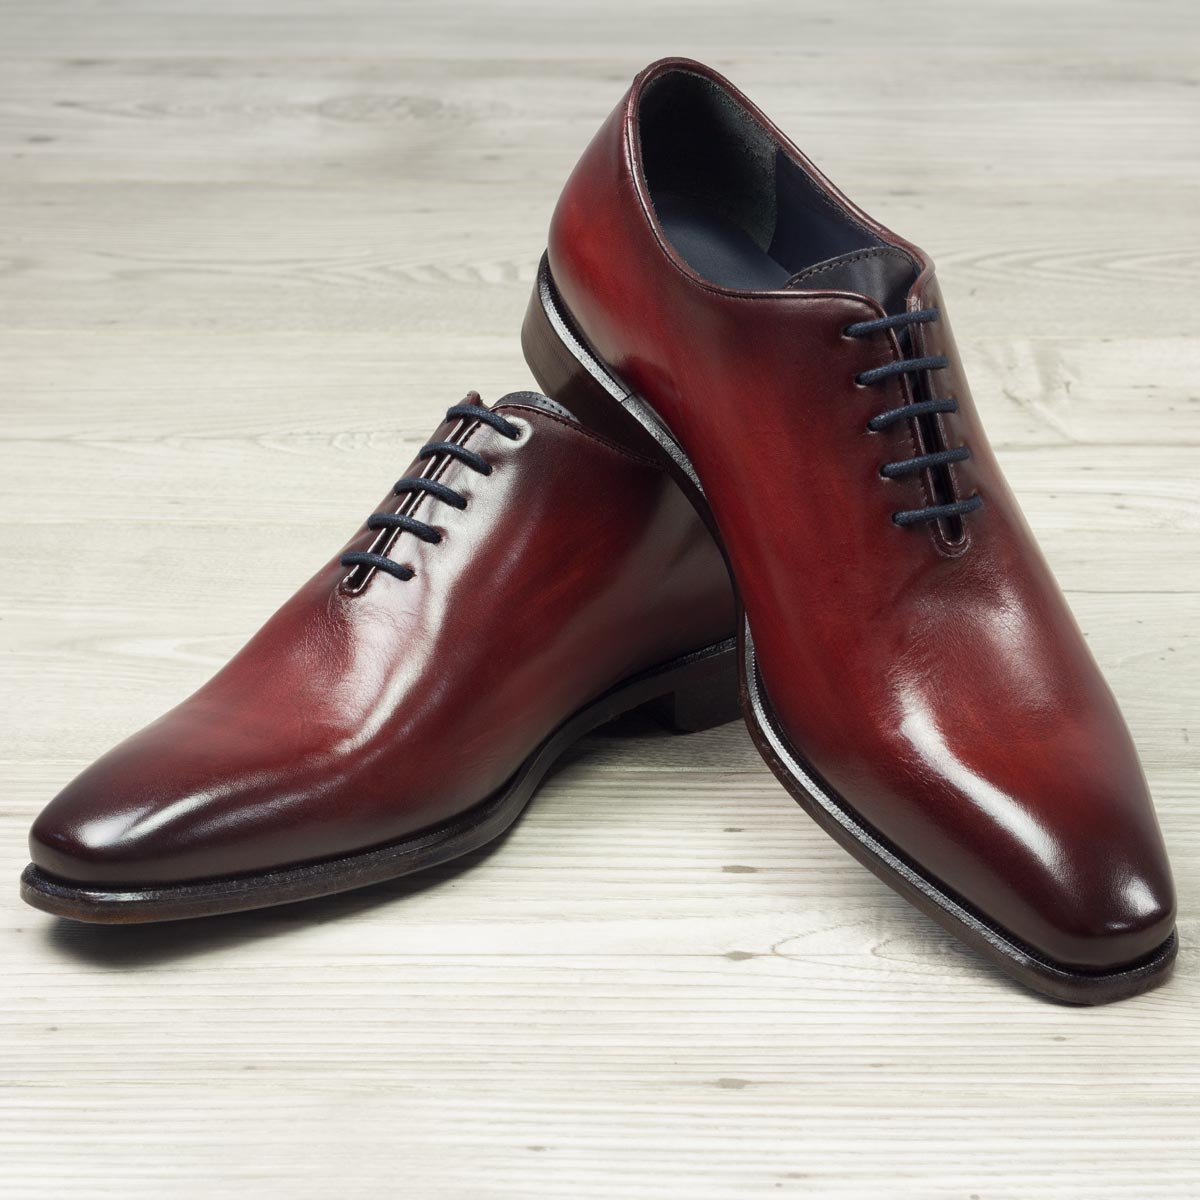 Whole cut grey crust patina + burgundy crust patina : 330€